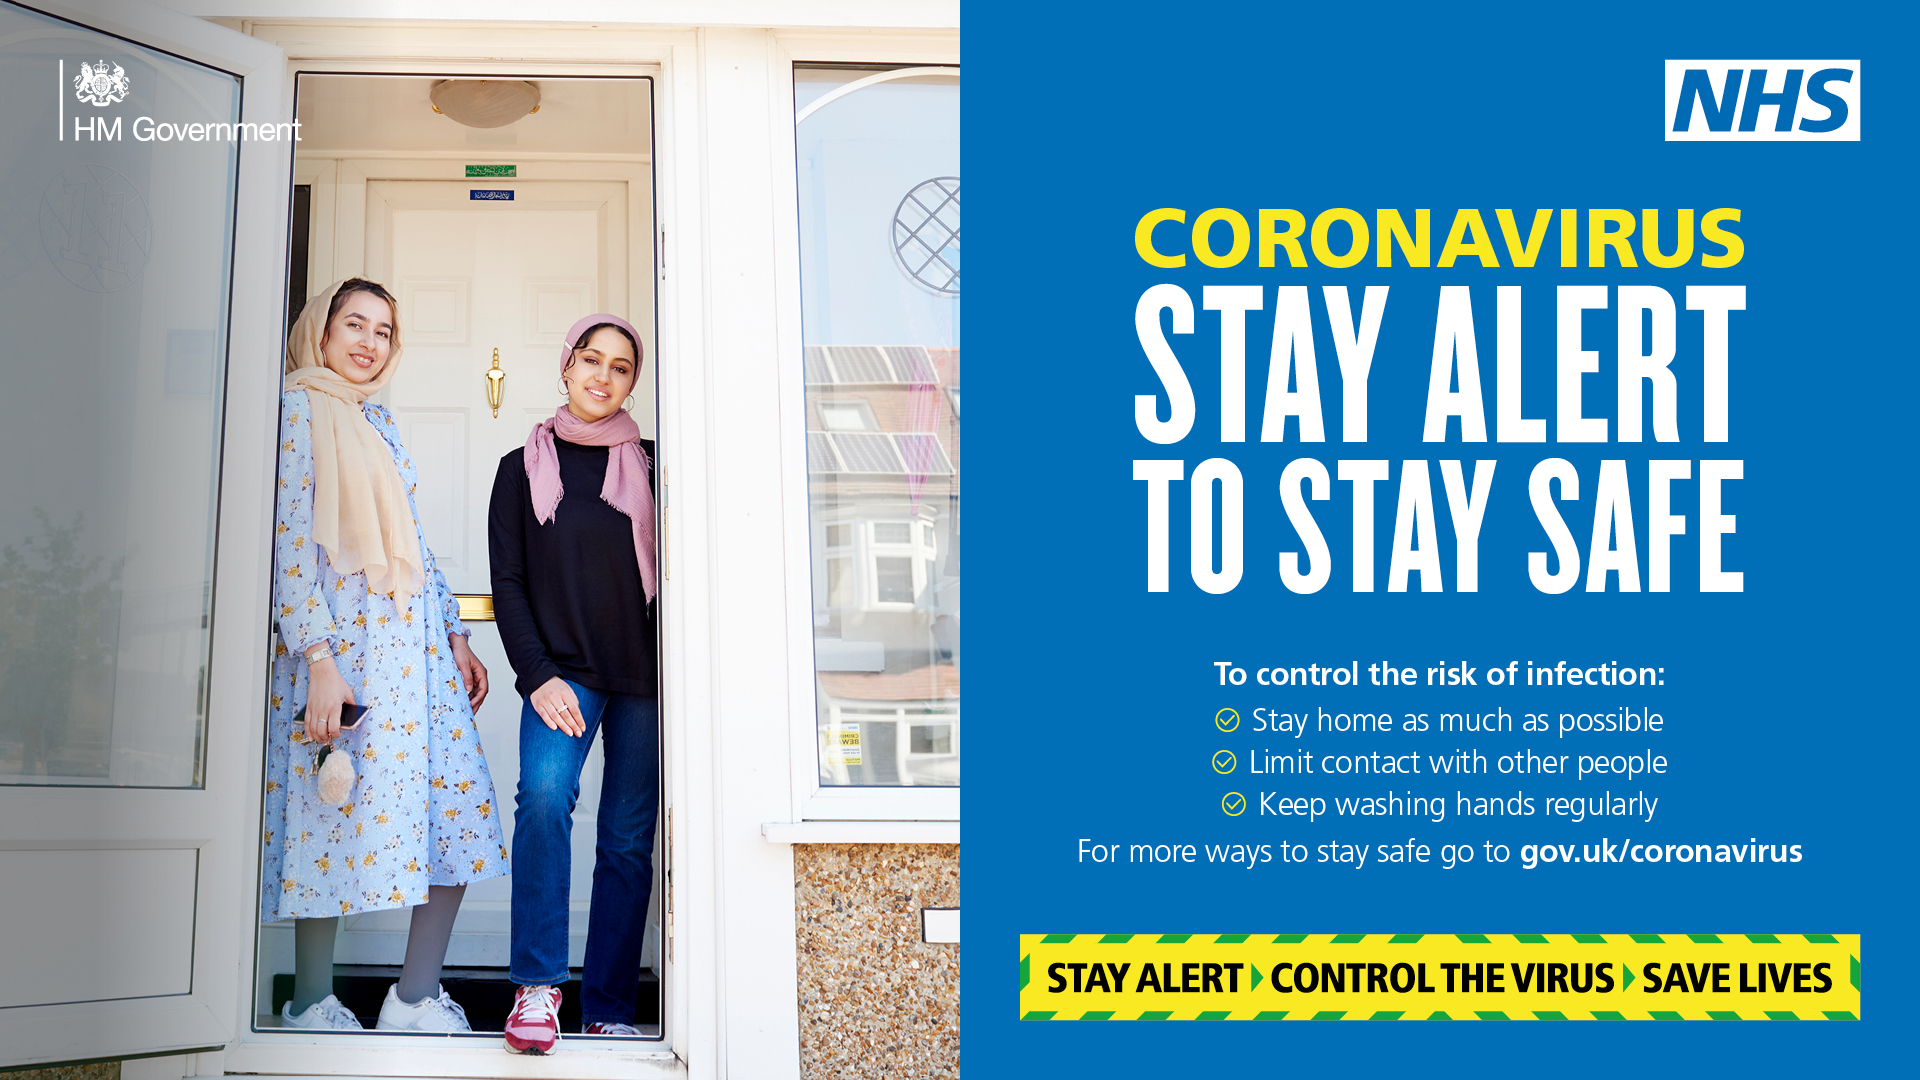 Coronavirus stay alert to stay safe, household bubble standing in doorway